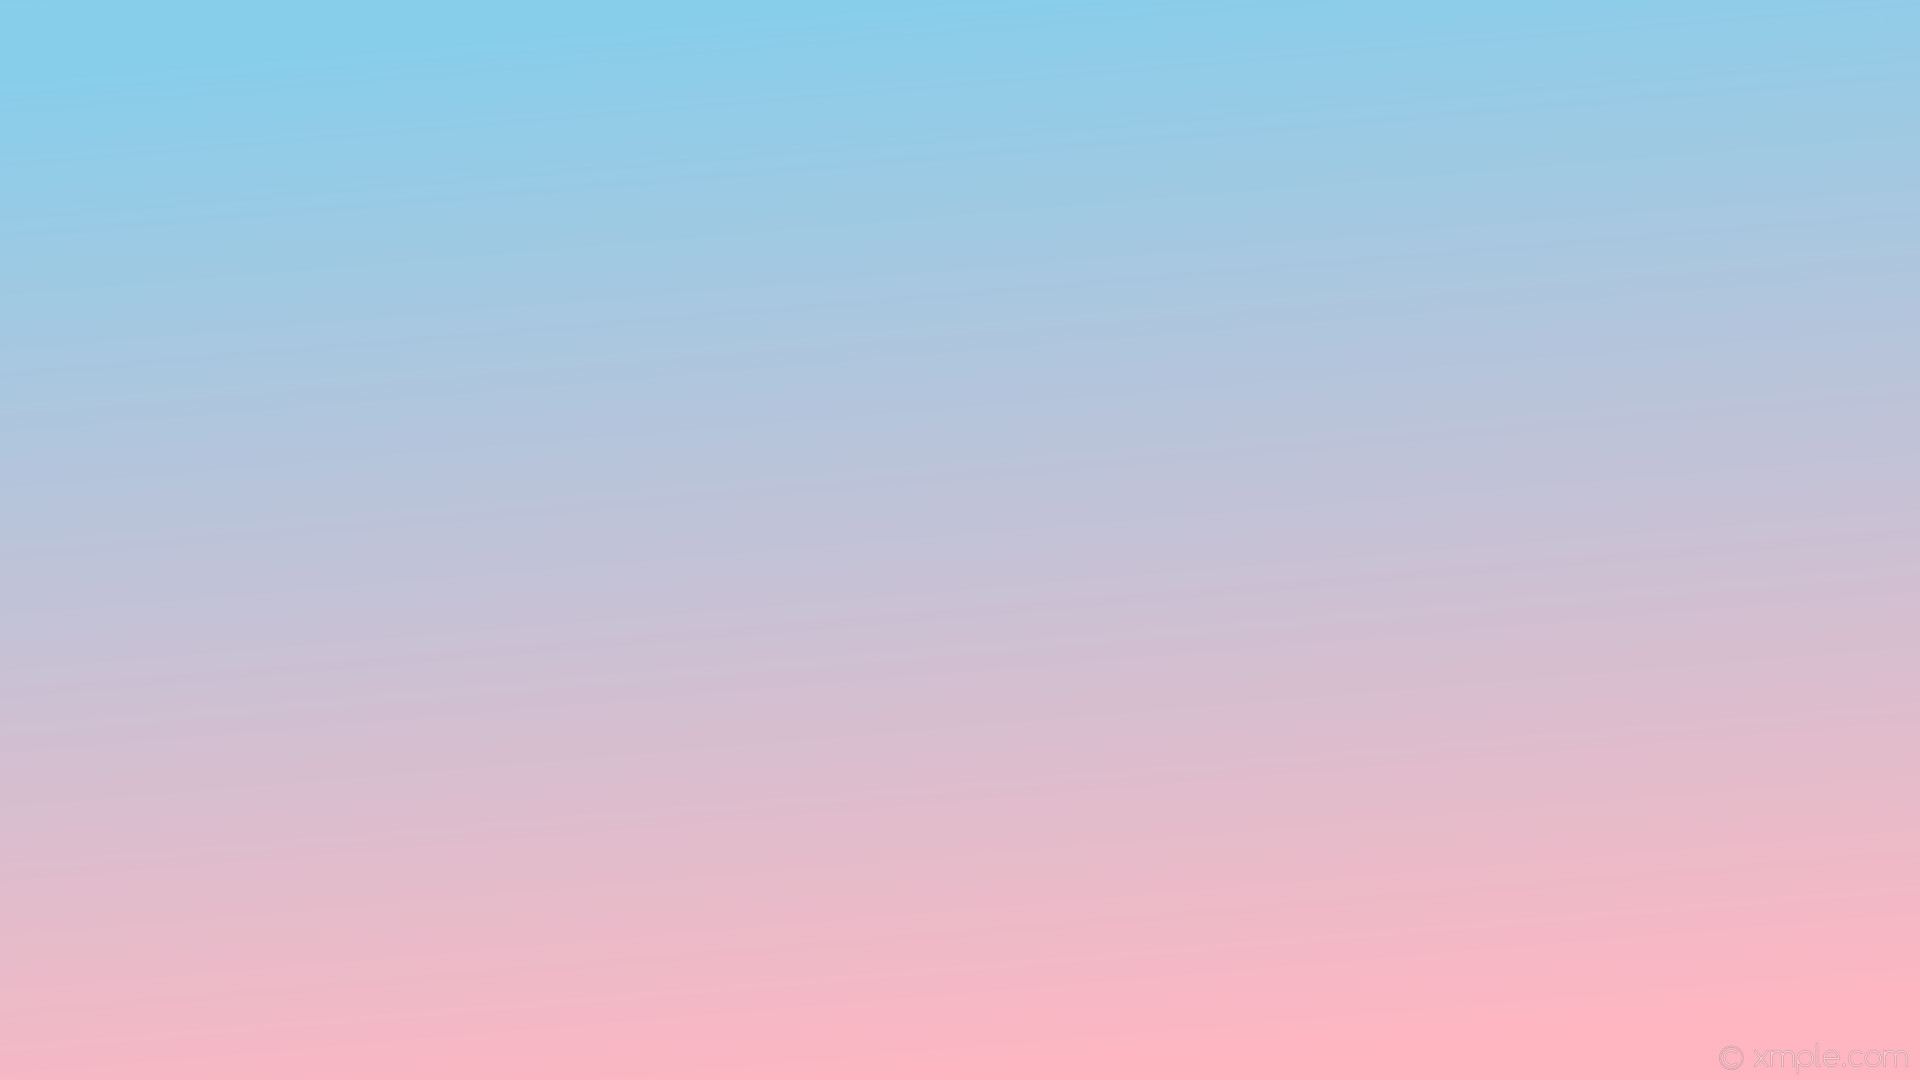 158+ Blue and Pink